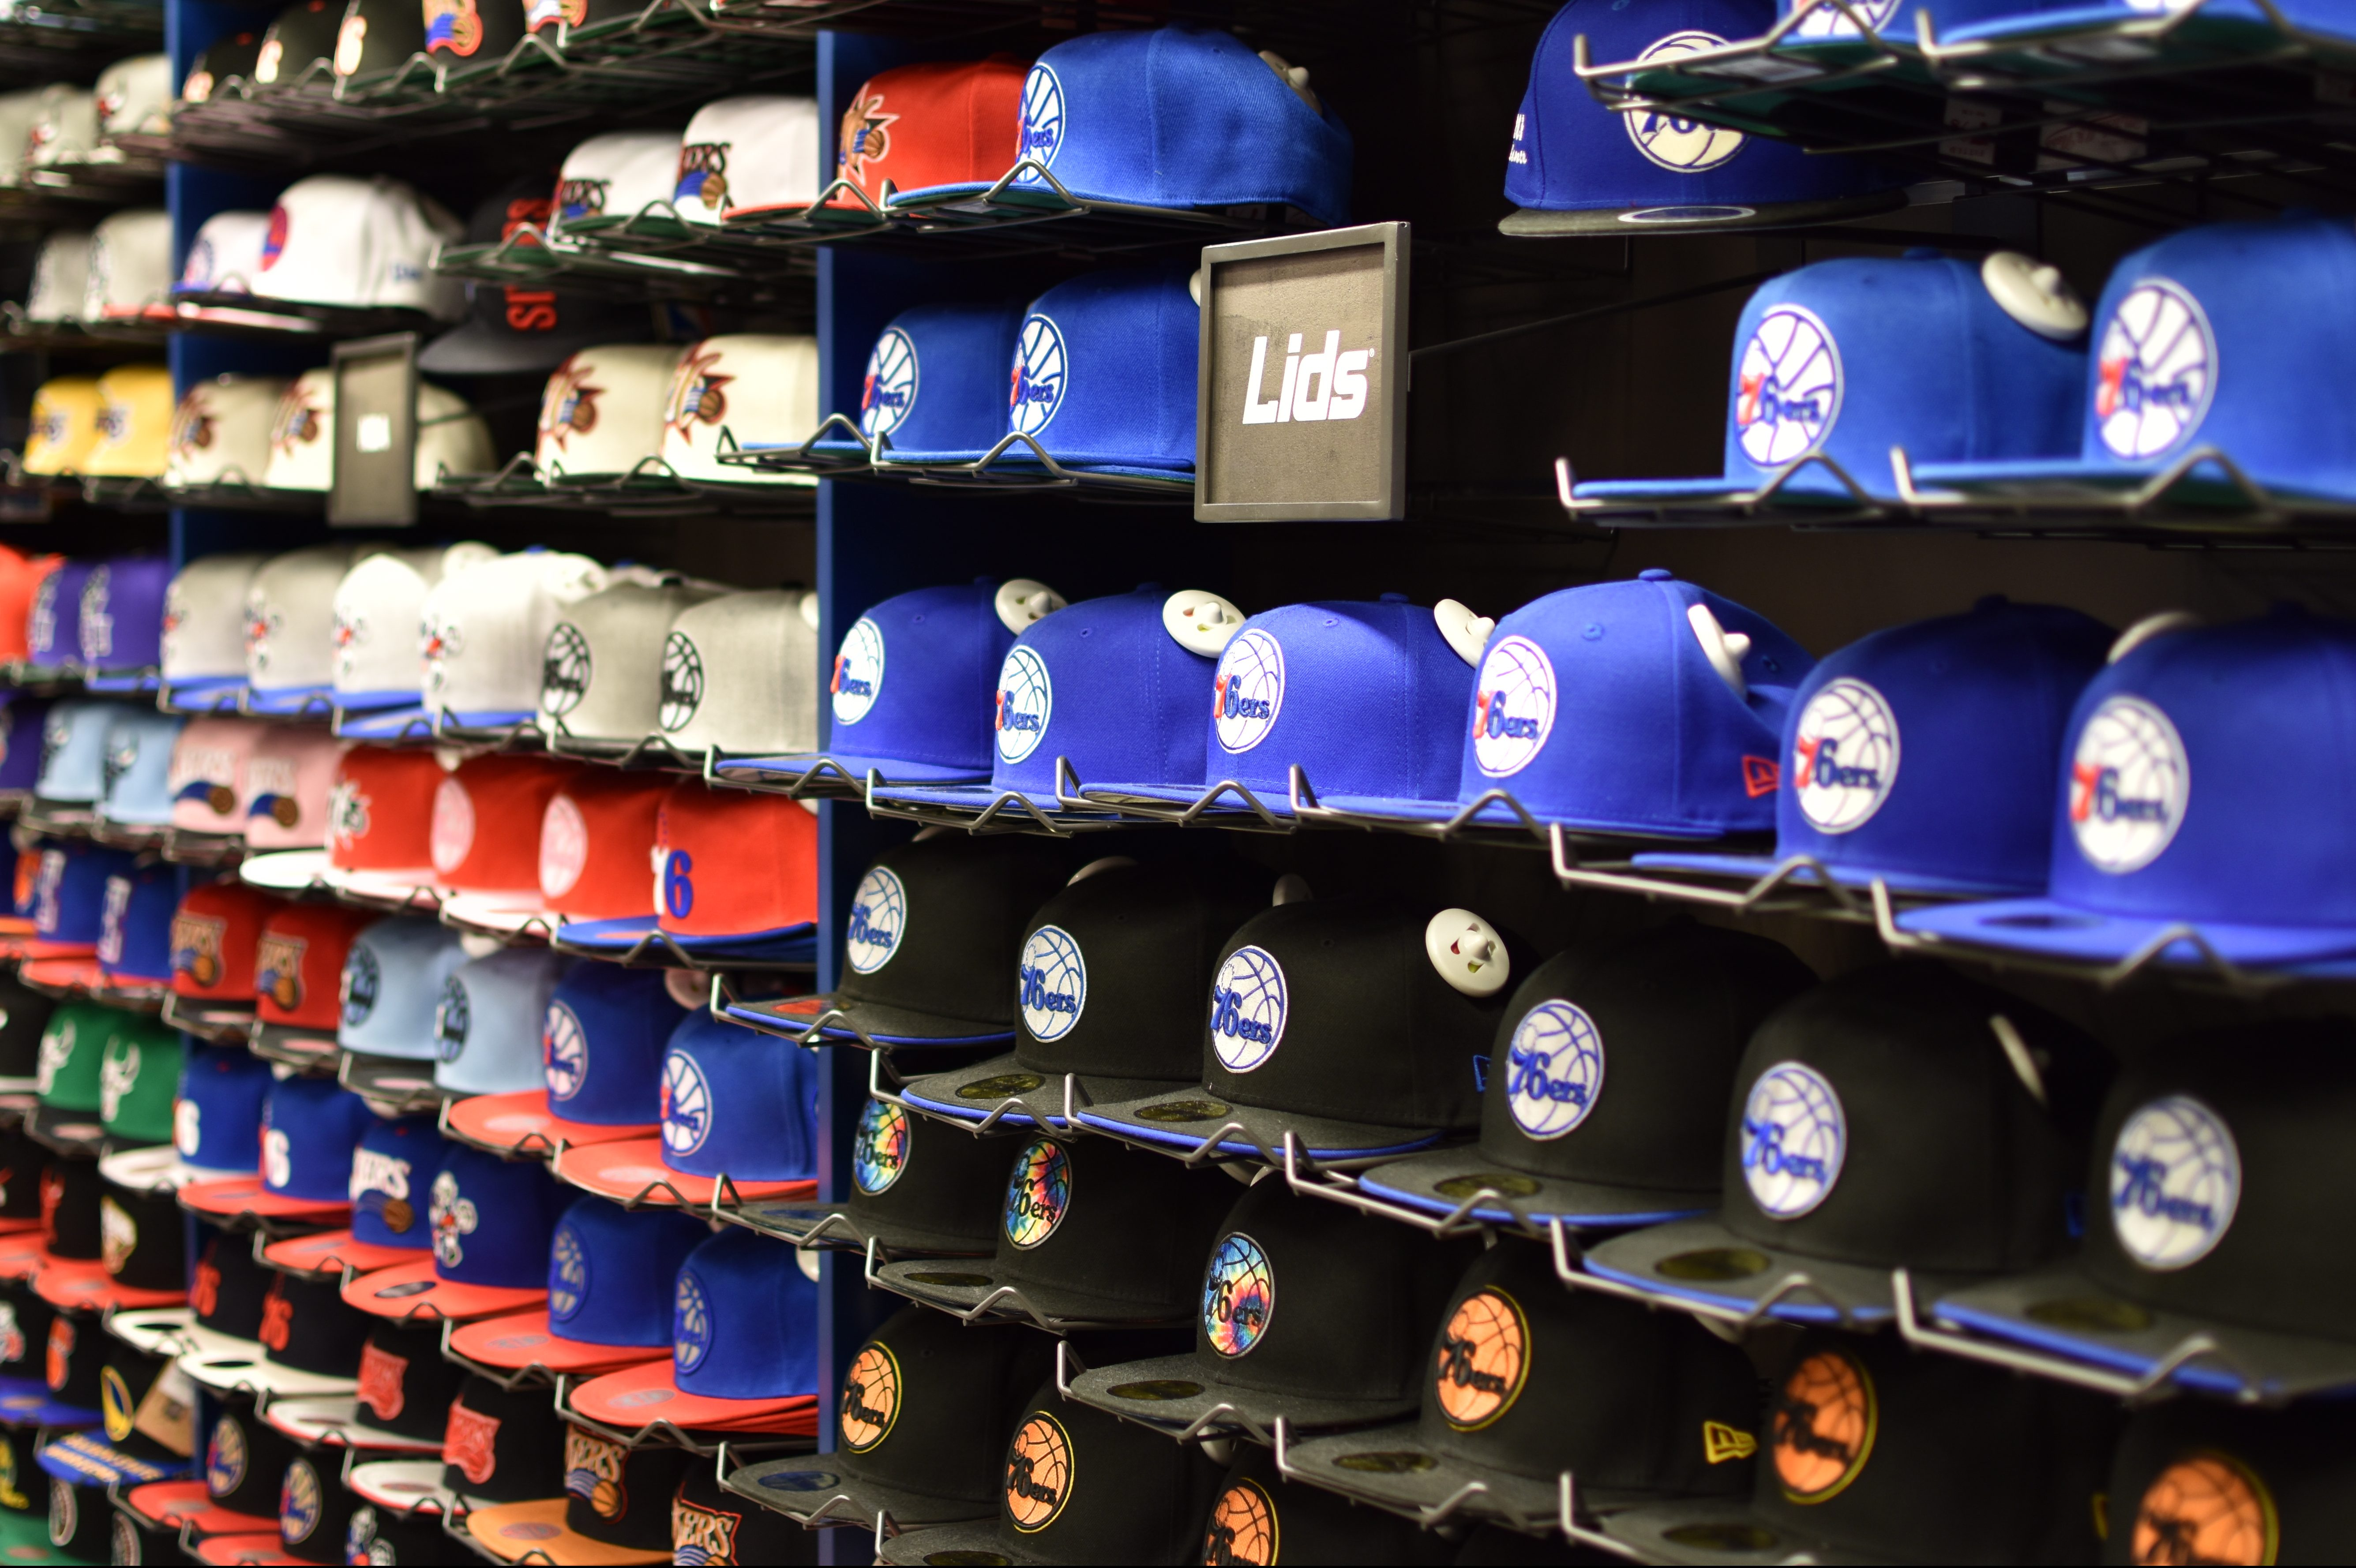 Lids is home to hats